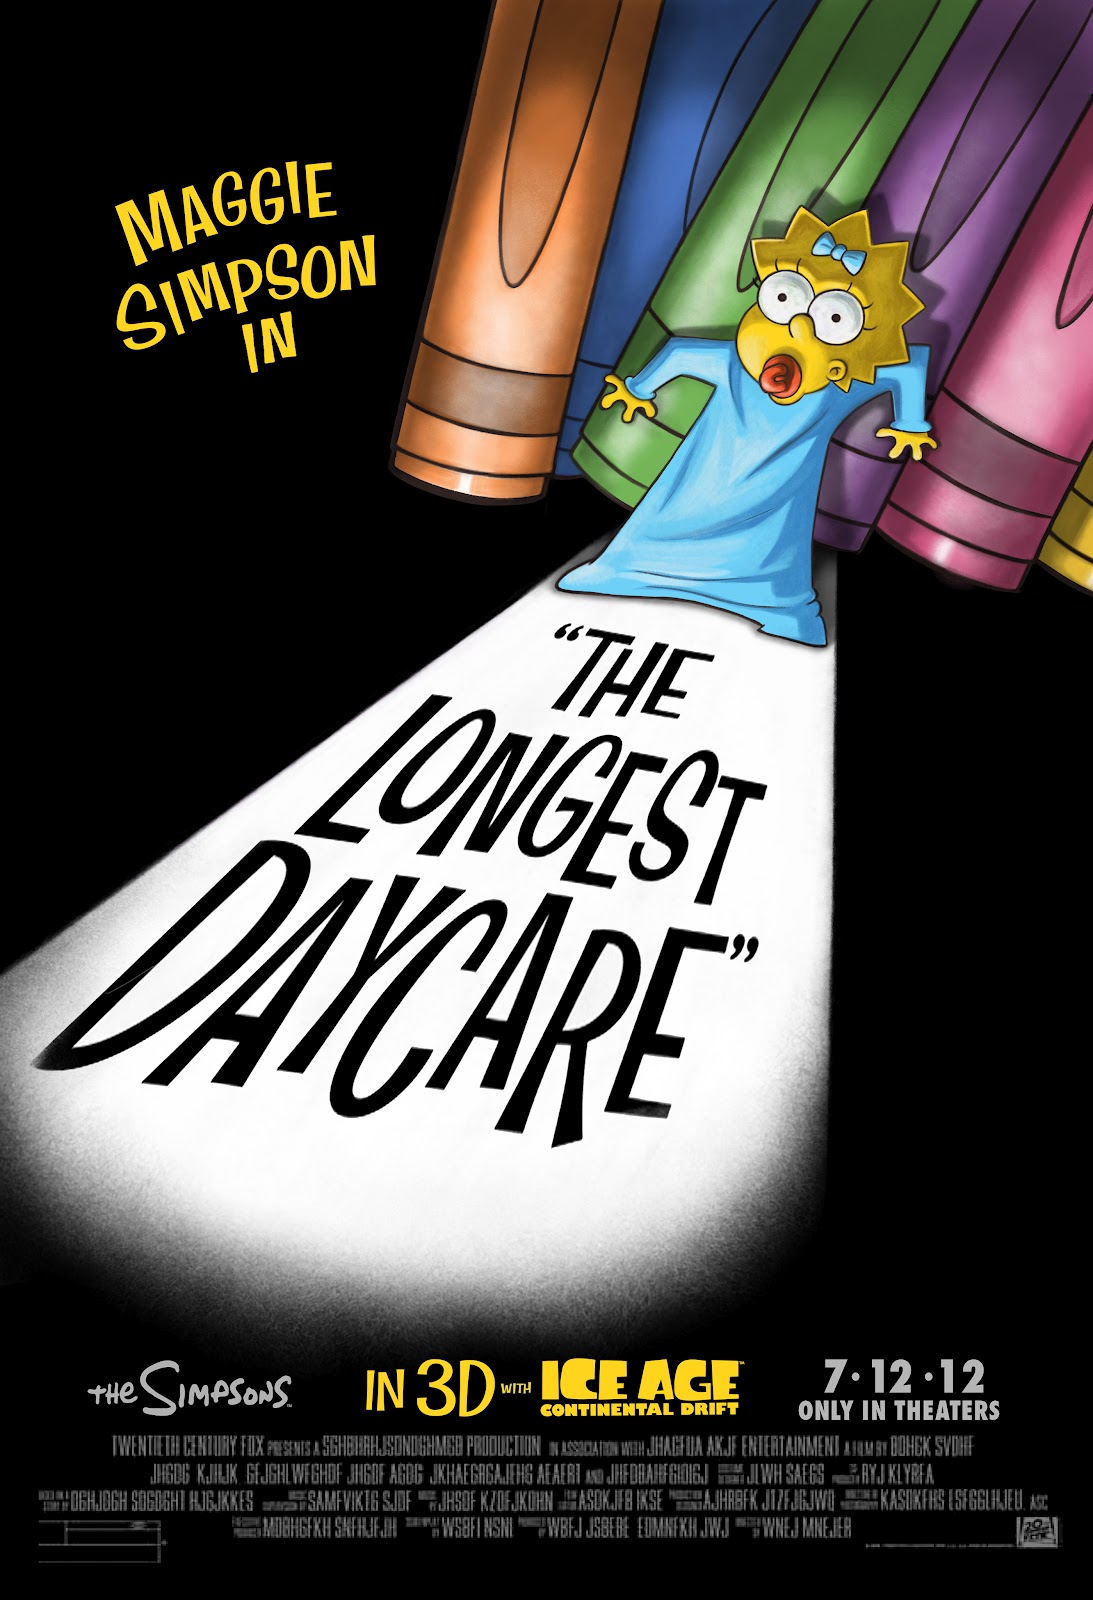 a brief history of the simpsons the american animation series The simpsons premiered as a half-hour comedy series january 14, 1990 acclaimed by critics and fans alike as one of television's truest and most hilarious portraits of the american family, the series received the 1990, 1991, 1995 and 1997 emmy awards for outstanding animated program.